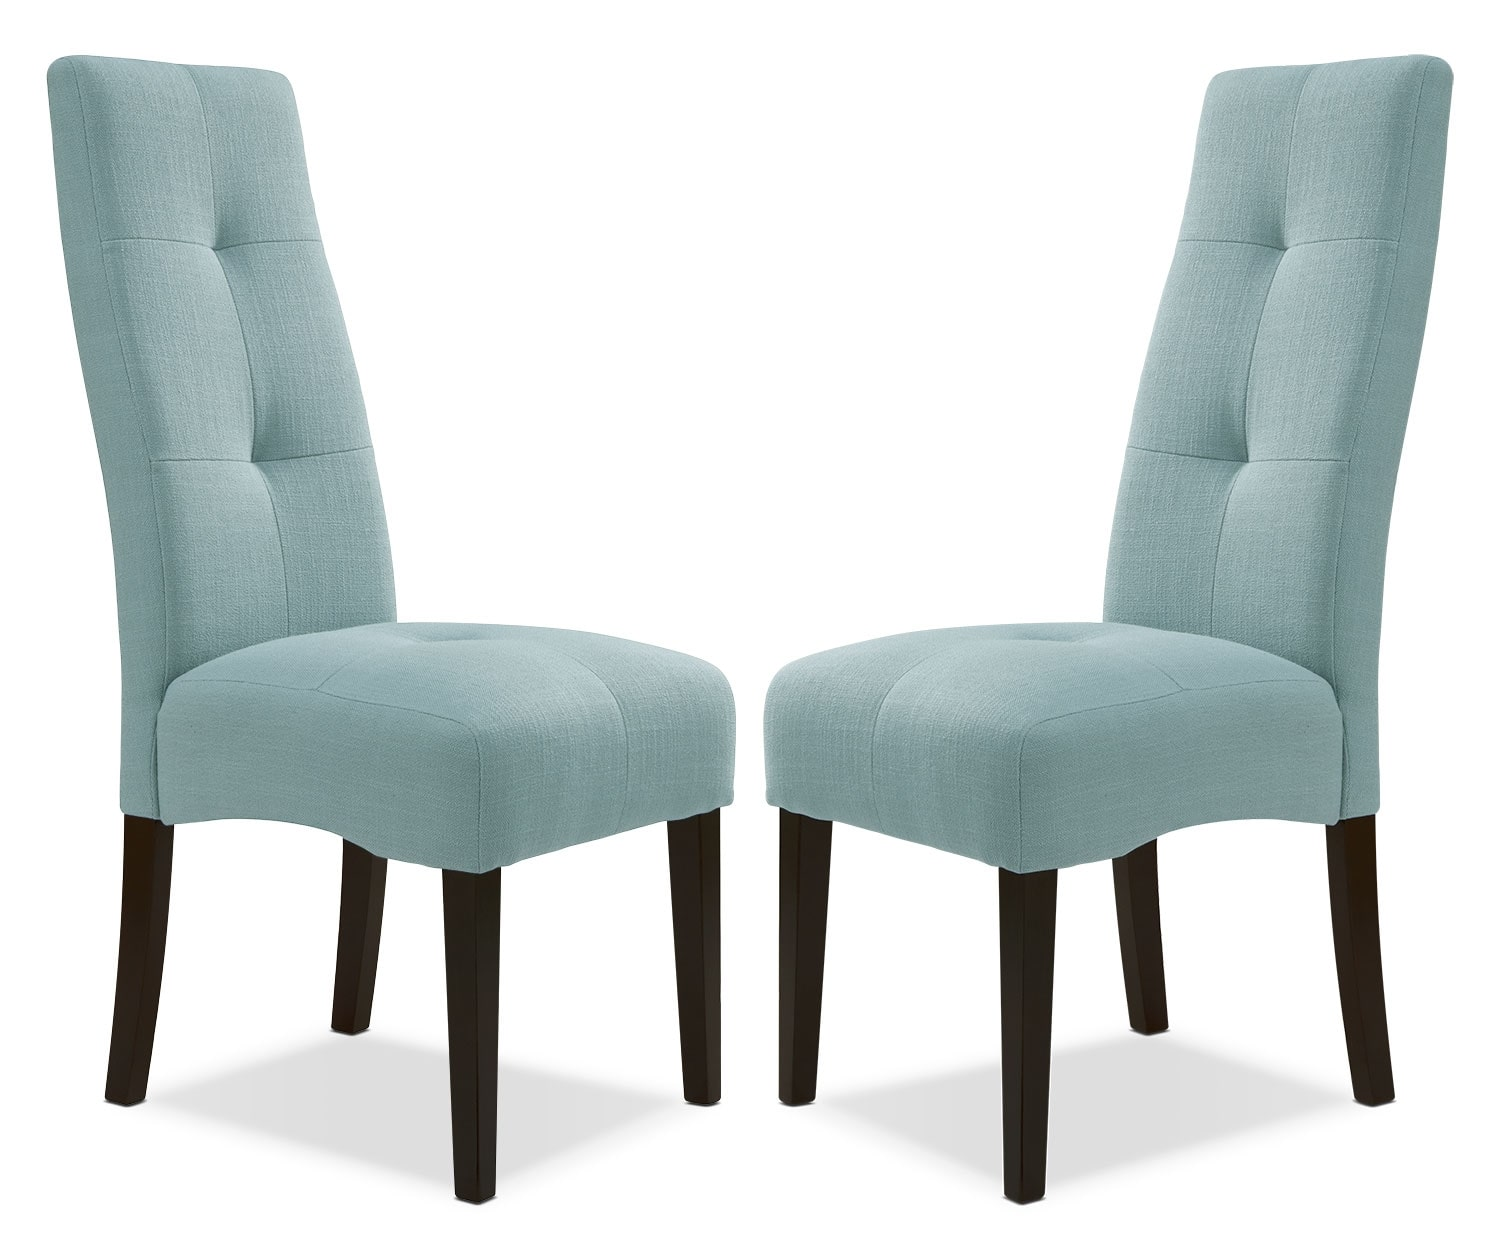 Light Blue Dining Chairs Dining Room Furniture Sadie Light Blue Dining Chair